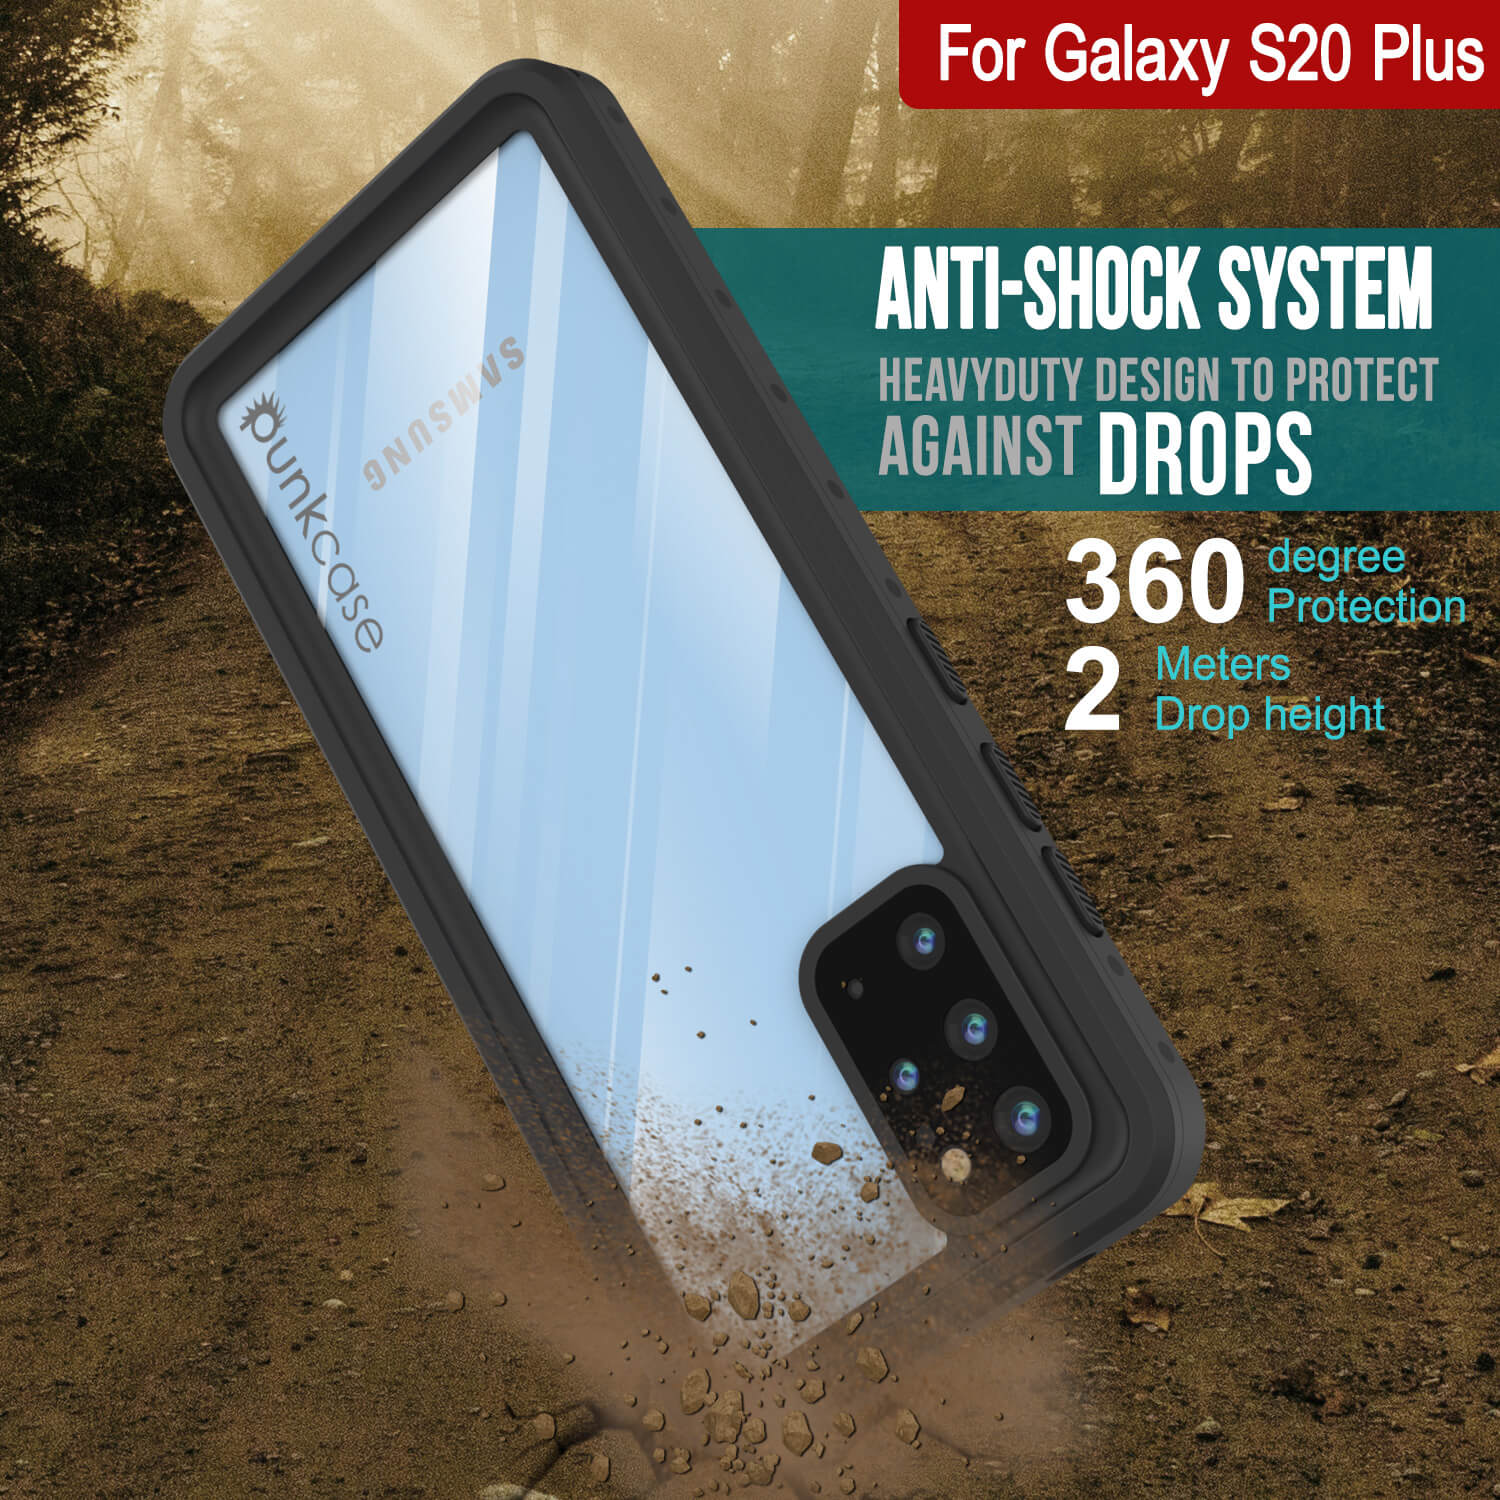 Galaxy S20+ Plus Waterproof Case PunkCase StudStar Clear Thin 6.6ft Underwater IP68 Shock/Snow Proof